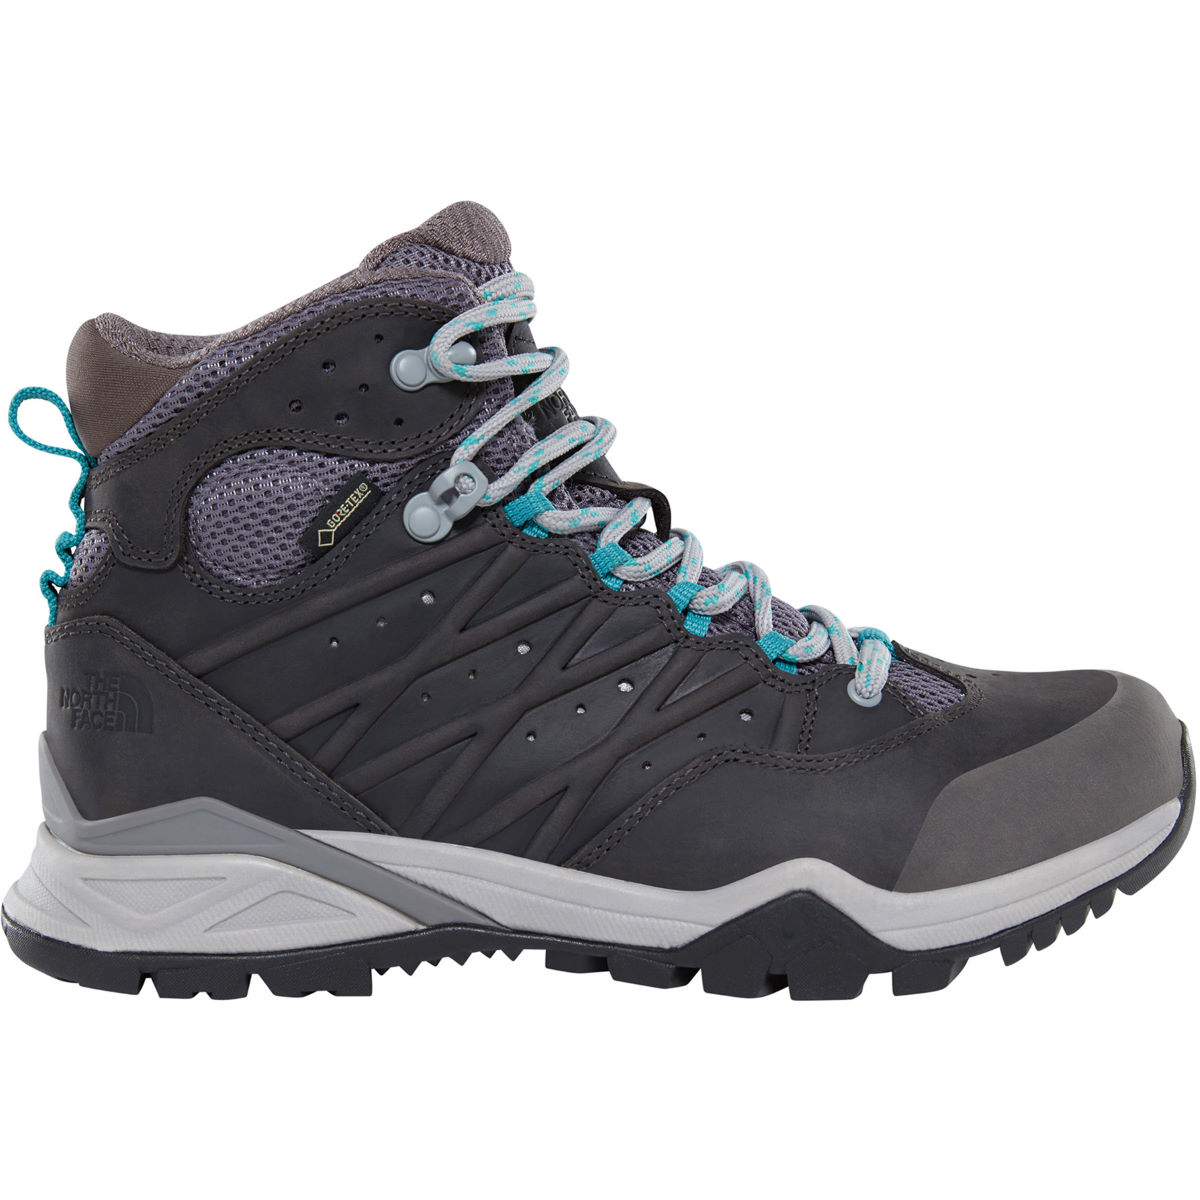 The North Face The North Face Women's Hedgehog Hike II Mid GTX Boots   Boots